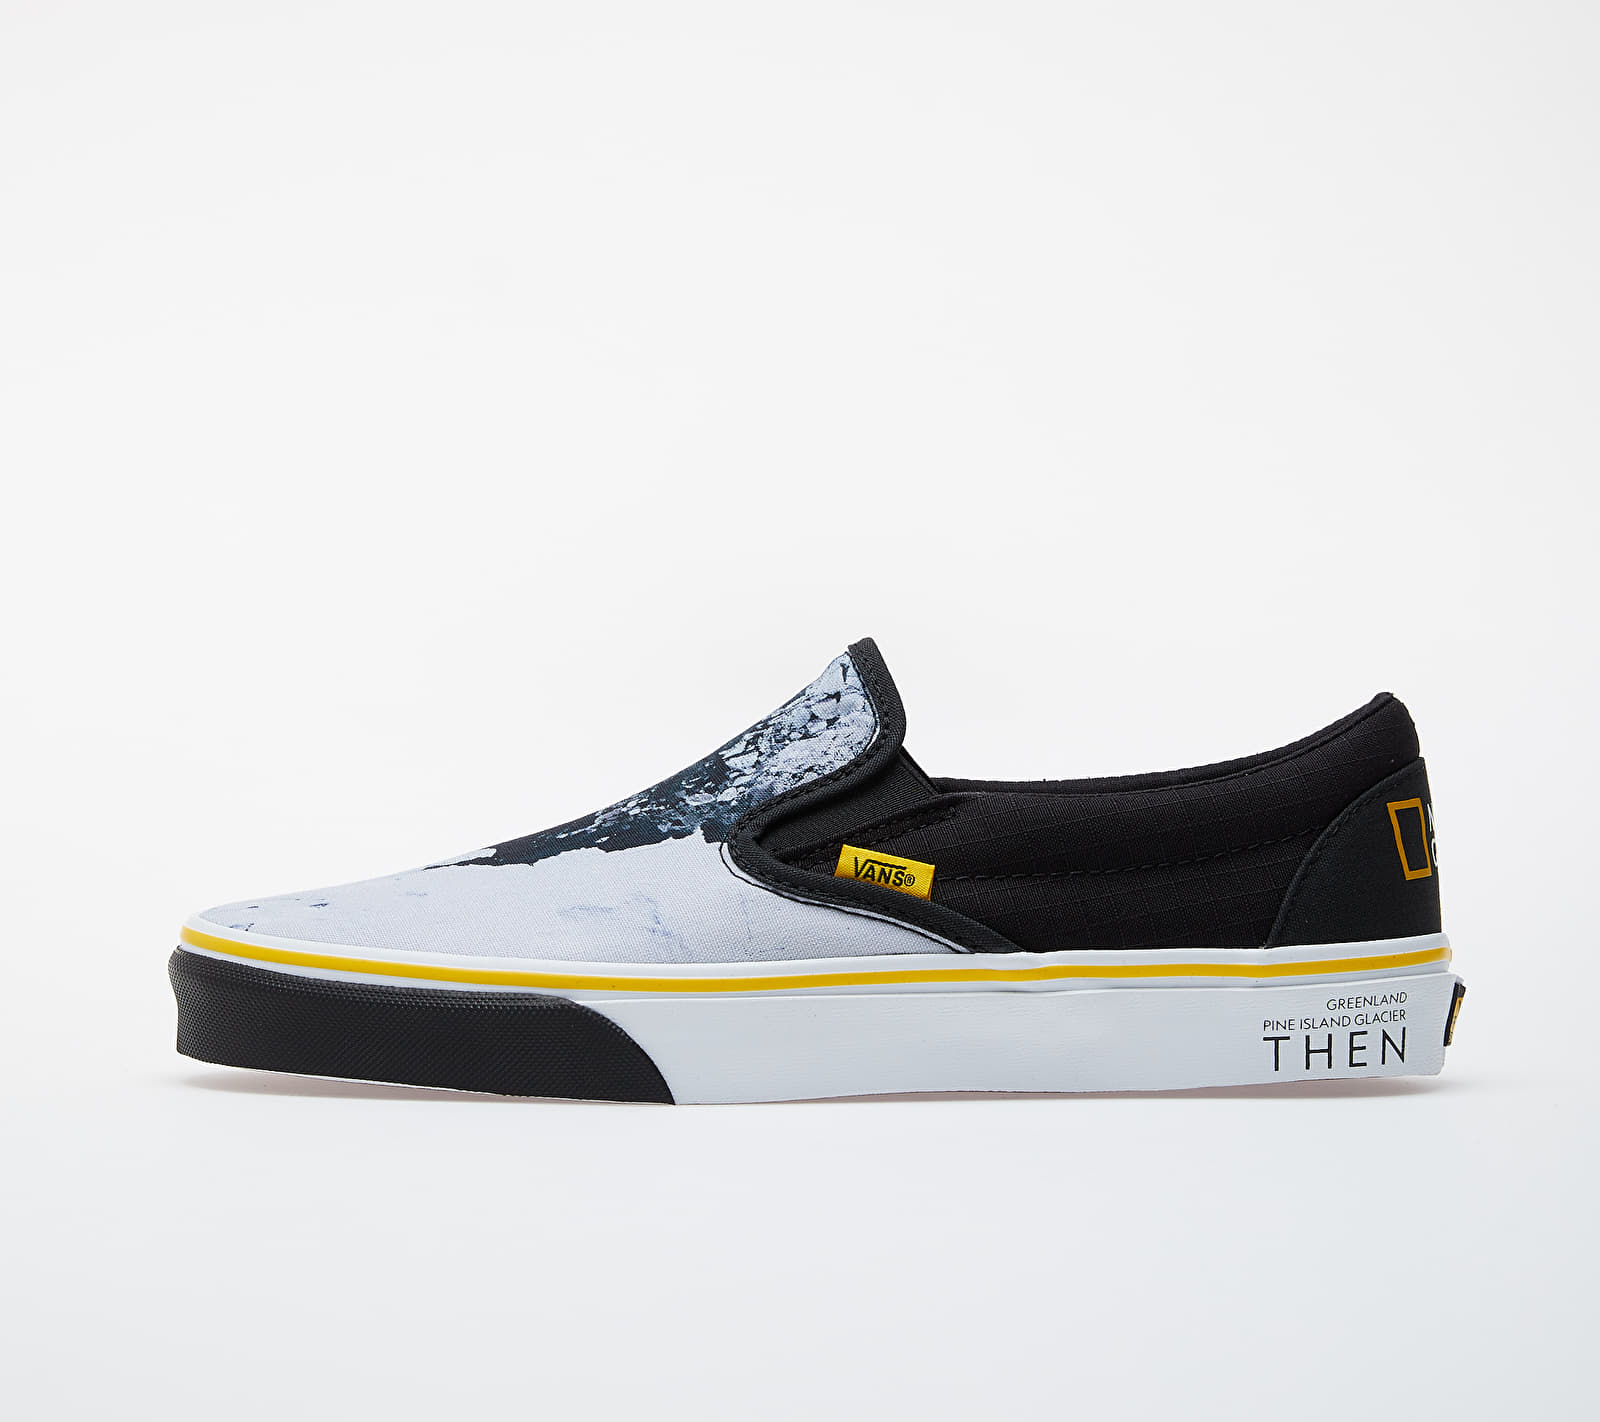 Vans Classic Slip-On (National Geographic) Black/ White-Yellow EUR 46